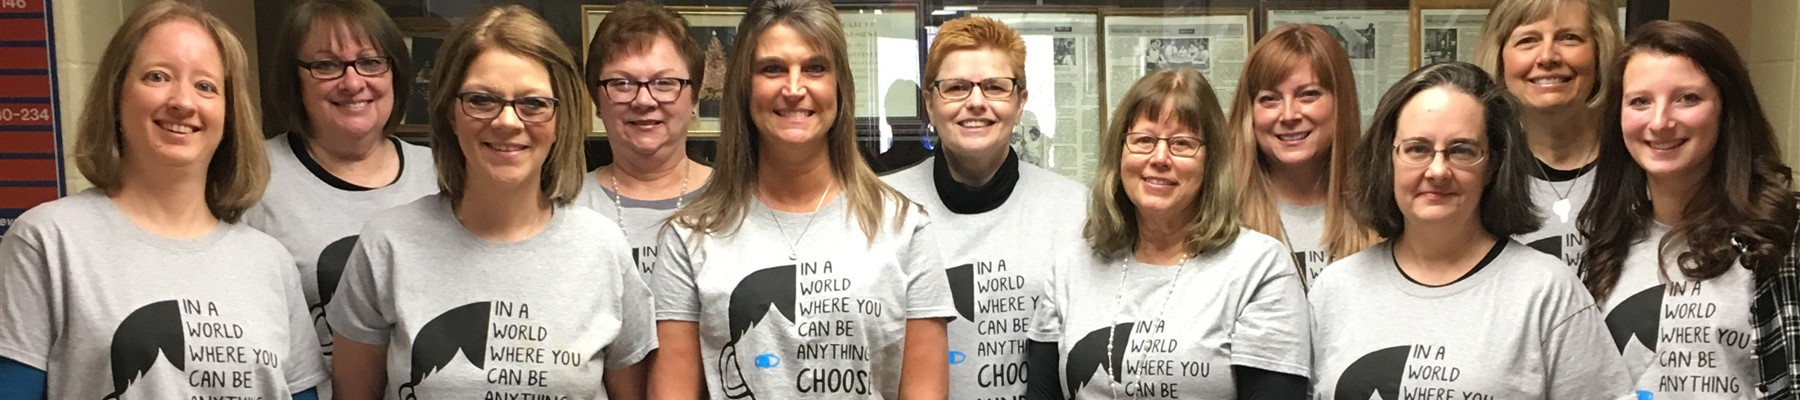 "Some of our MoGo Staff show their Kindness shirts stating, ""In a world where you can be anything, be KIND."""